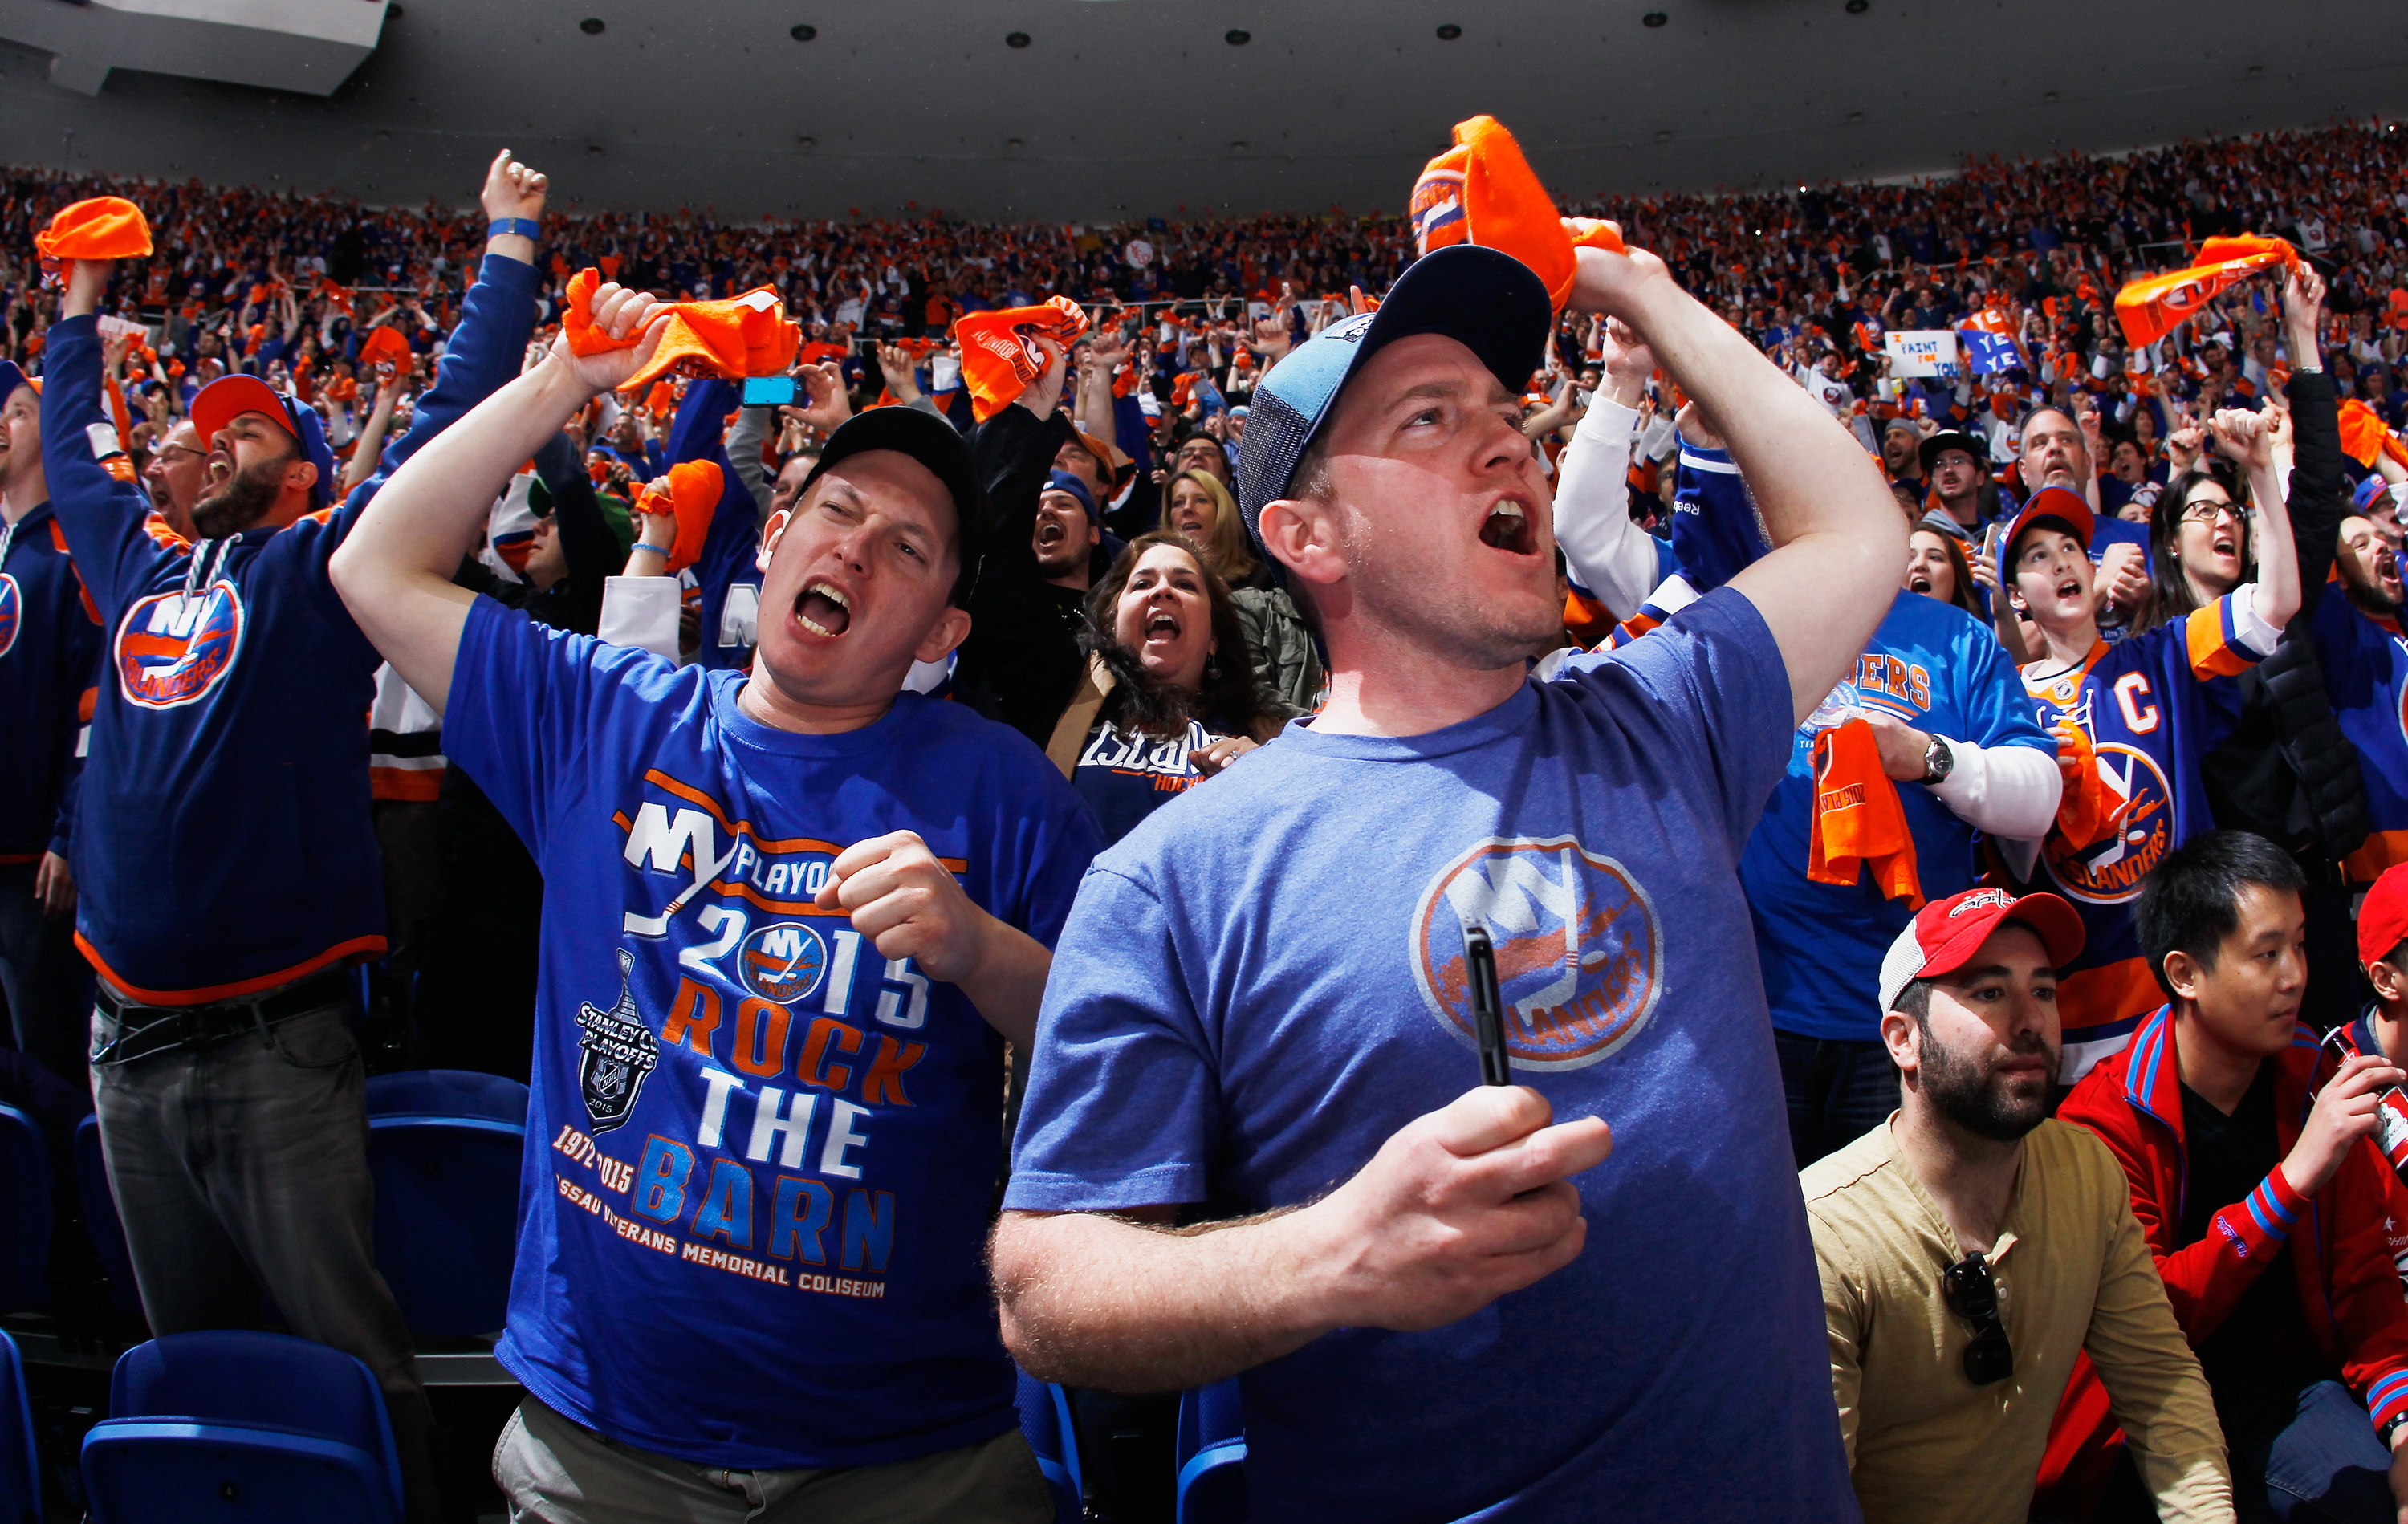 UNIONDALE, NY - APRIL 19:  Fans enjoy the atmosphere during the game between the New York Islanders and the Washington Capitals in Game Three of the Eastern Conference Quarterfinals during the 2015 NHL Stanley Cup Playoffs at the Nassau Veterans Memorial Coliseum on April 19, 2015 in Uniondale, New York.  (Photo by Bruce Bennett/Getty Images)